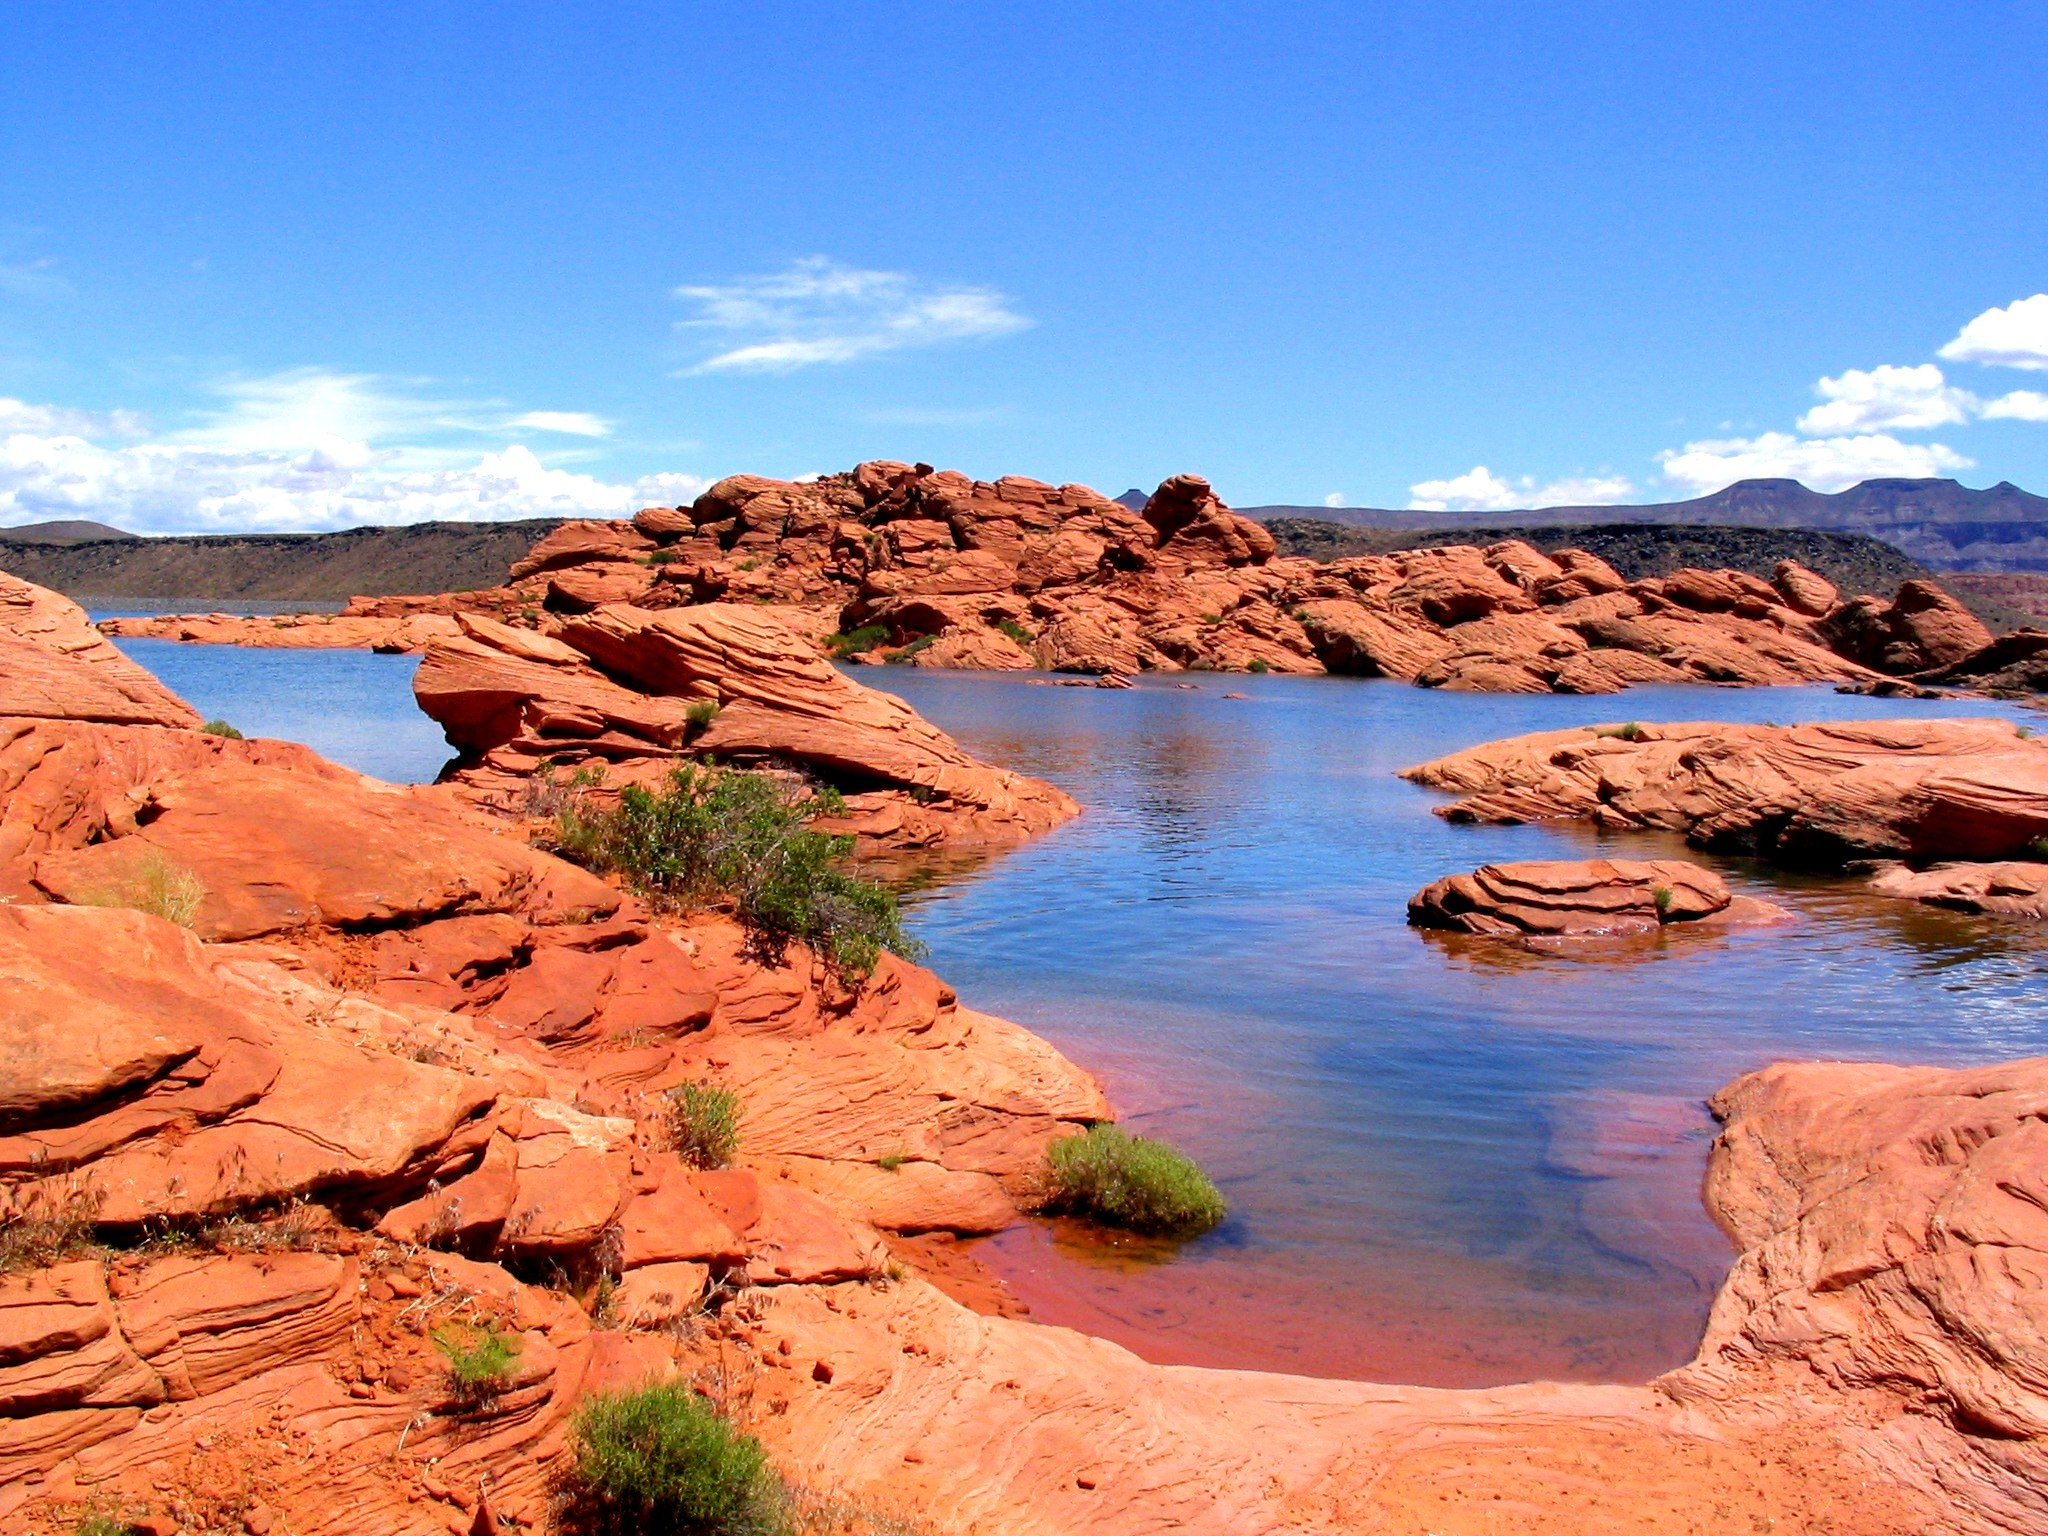 Sand Hollow State Park (obtained from Utah.gov)